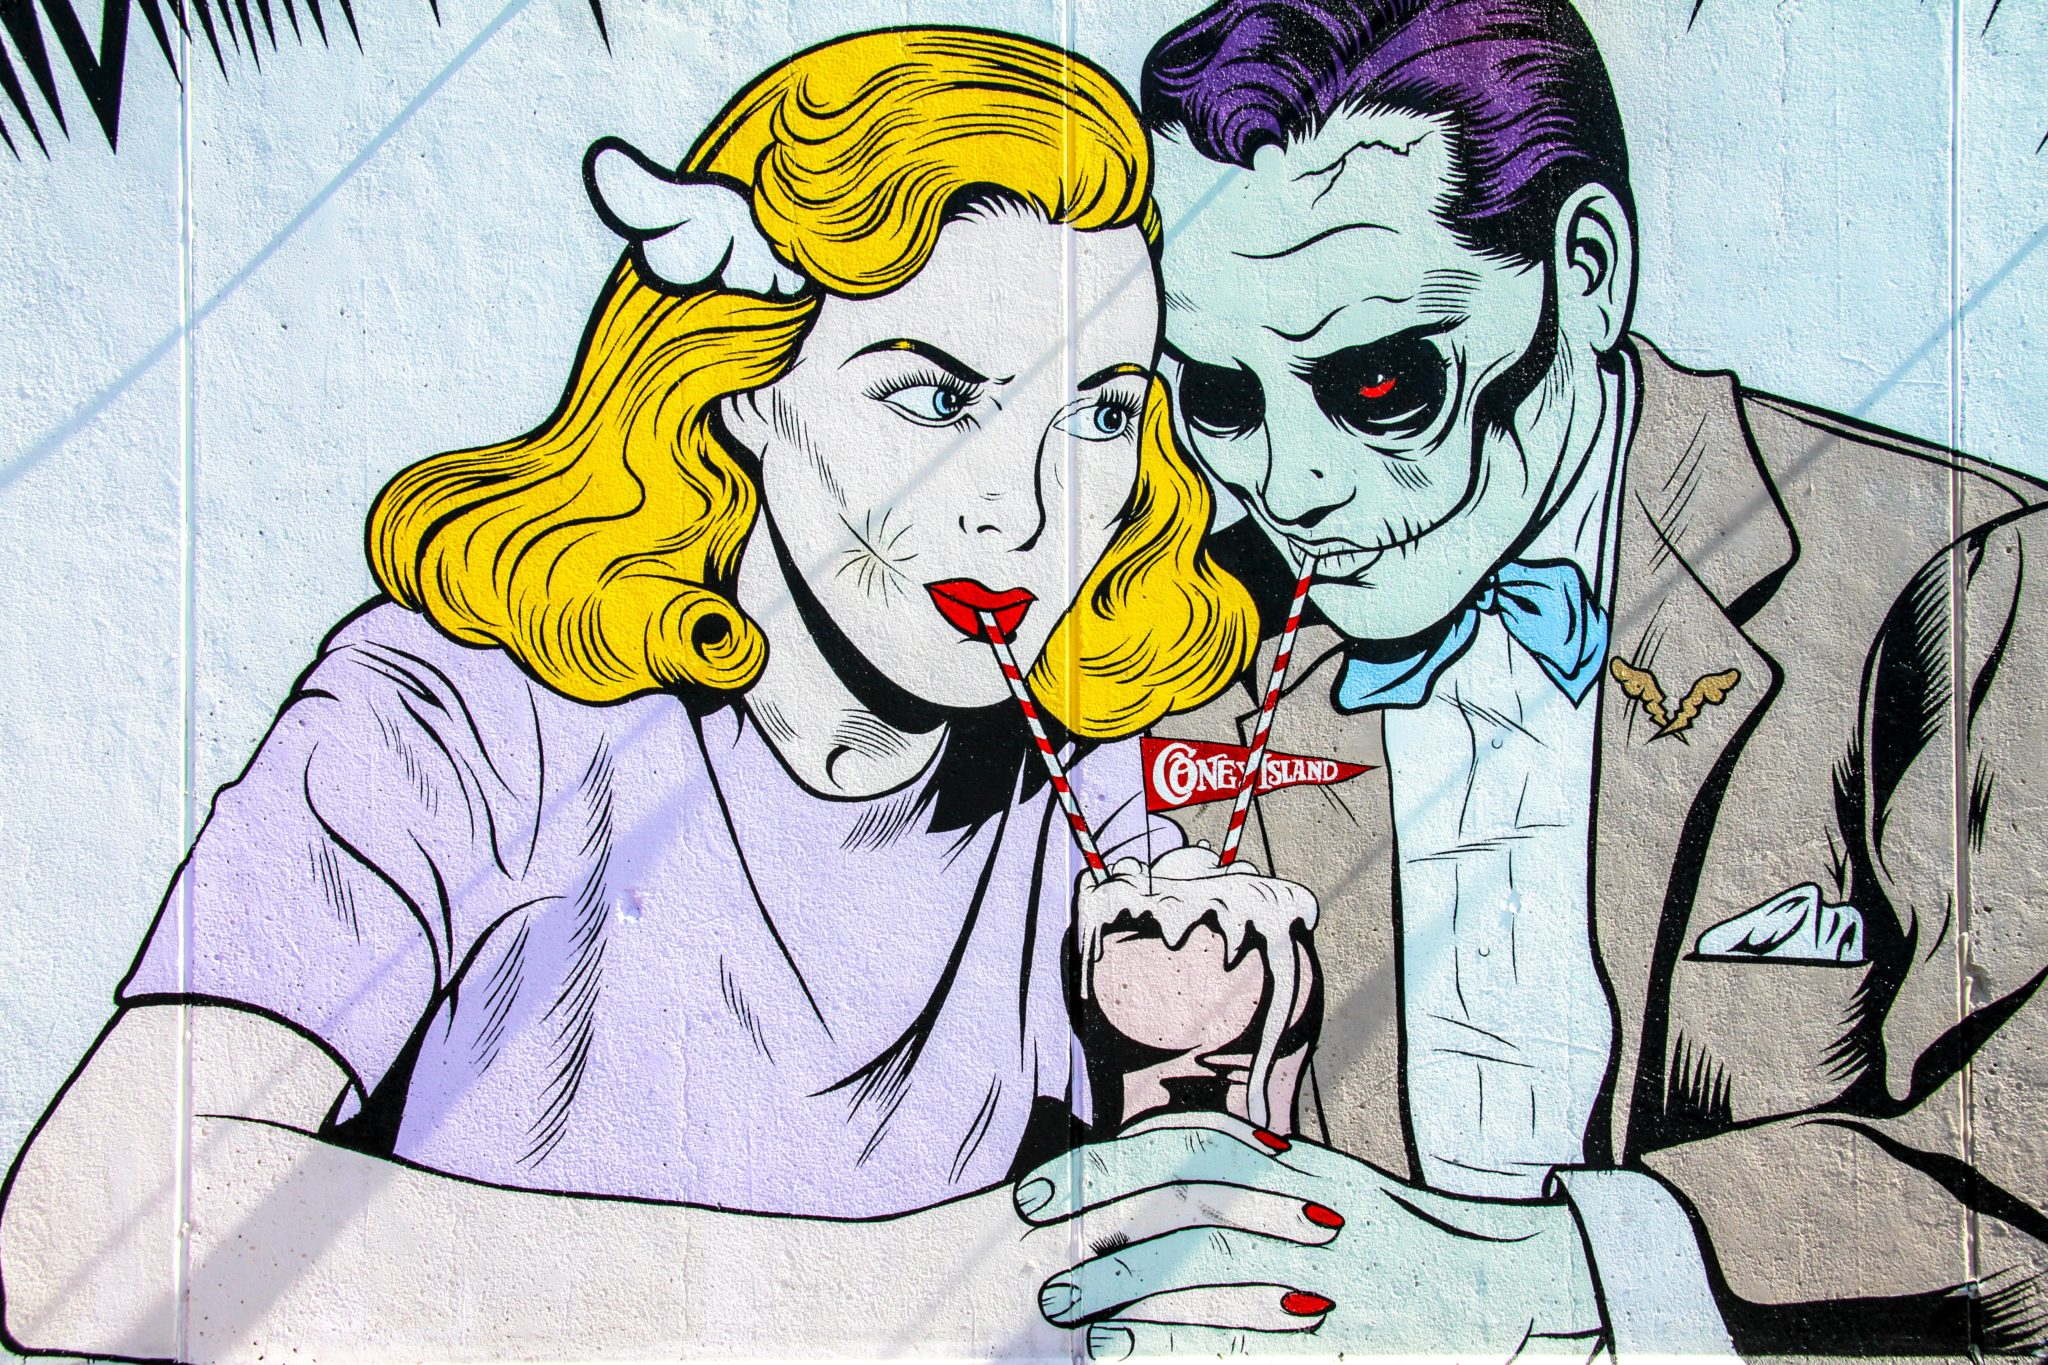 A comic book style man and woman sharing a milkshake